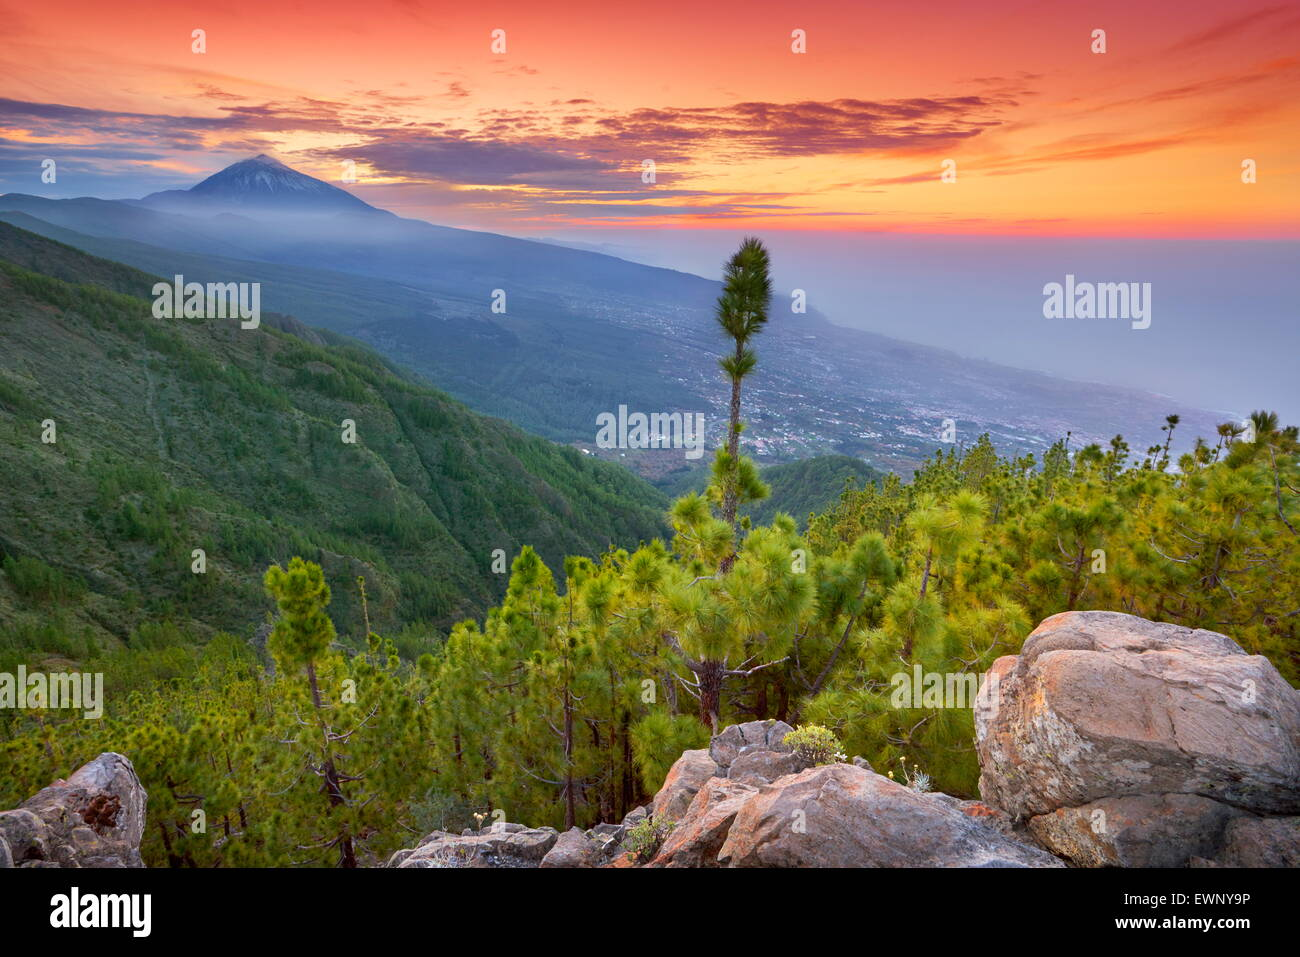 Teide Mount landscape at sunset time, Tenerife, Canary Islands, Spain - Stock Image